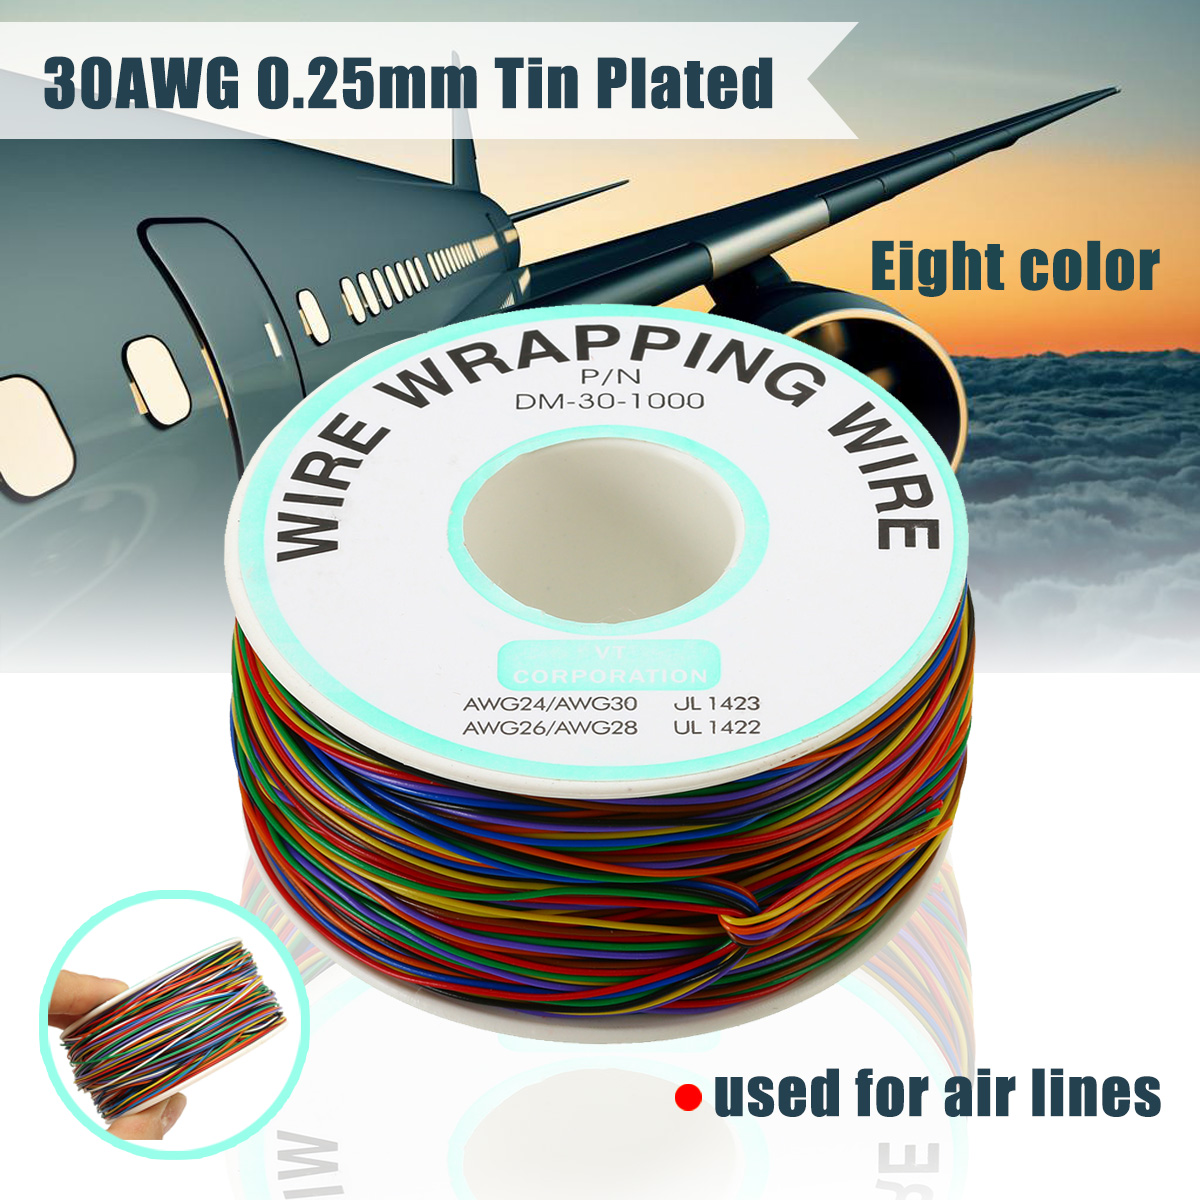 где купить 1pc Tin Plated Copper Wrapping Cable 30AWG 0.25mm Wire Wrap Insulation Test Cable 8-Colored for Electronic Testing/Breadboard дешево